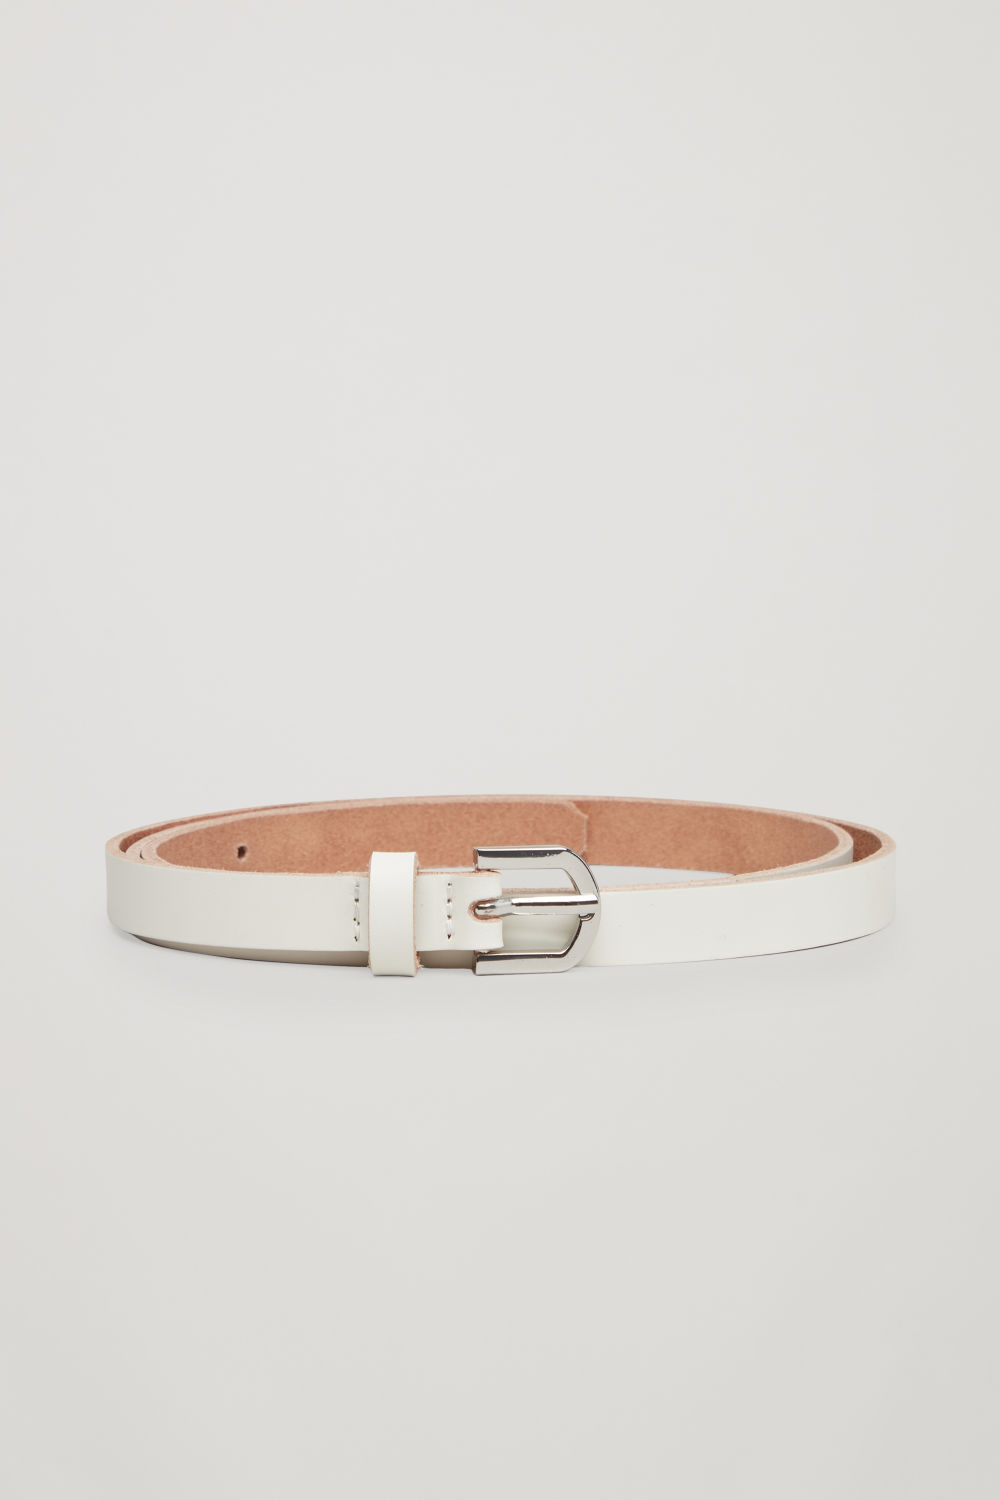 코스 COS Leather belt with contrast buckle,White